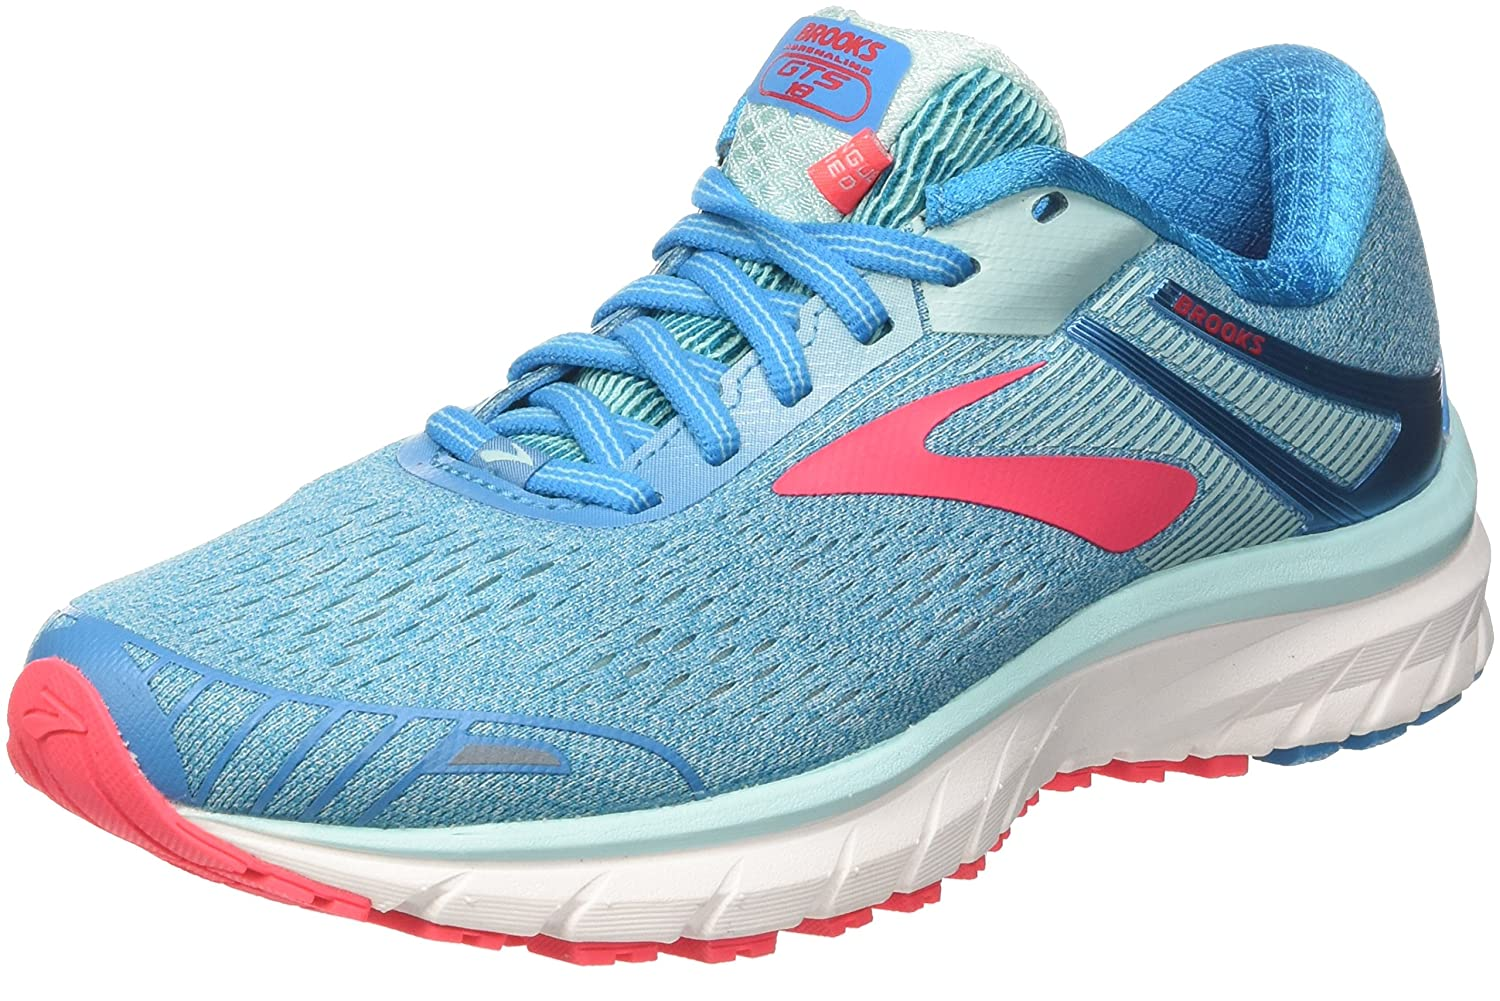 Brooks Womens Adrenaline GTS 18 B071VKGCMK 5.5 B(M) US|Blue/Mint/Pink